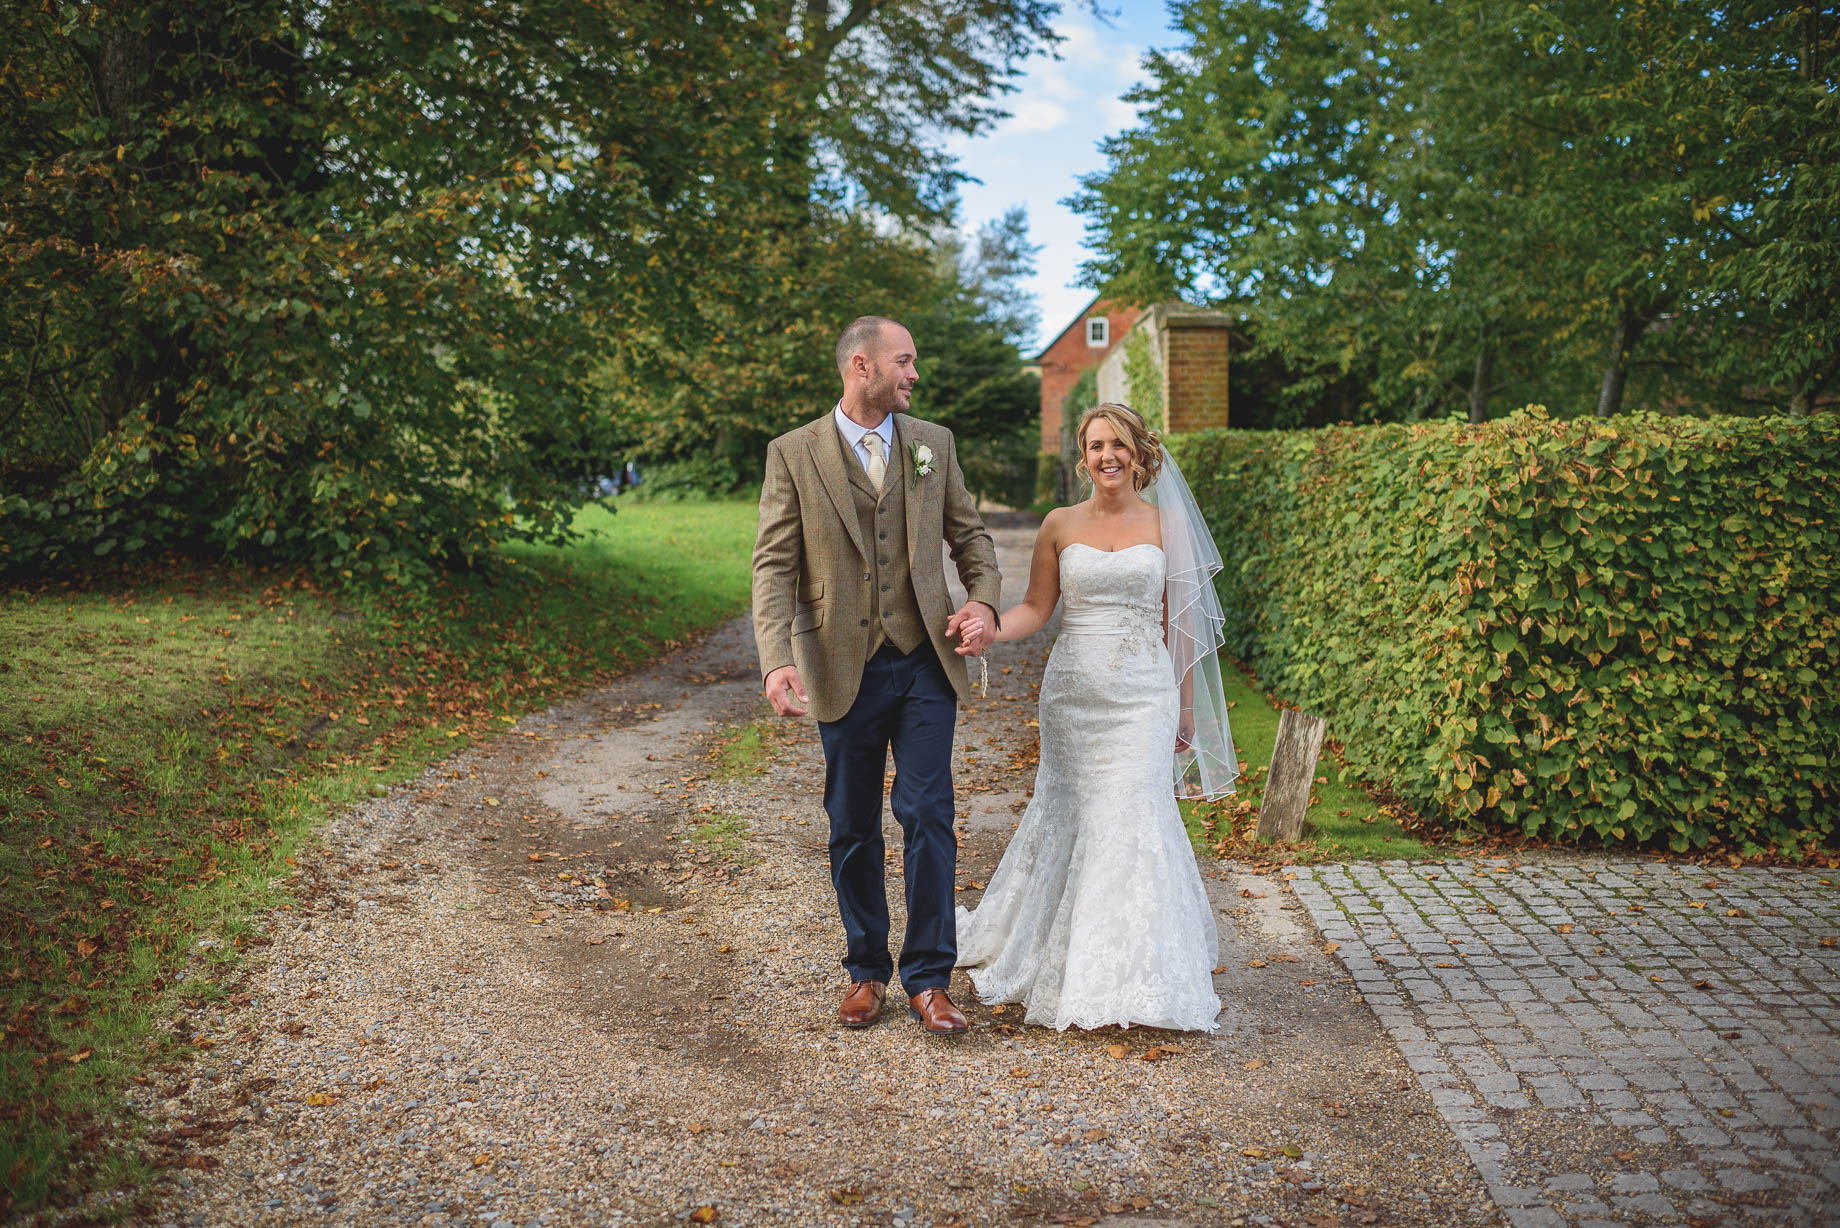 Bury Court Barn wedding photography - Guy Collier - Kate and Russ (110 of 187)